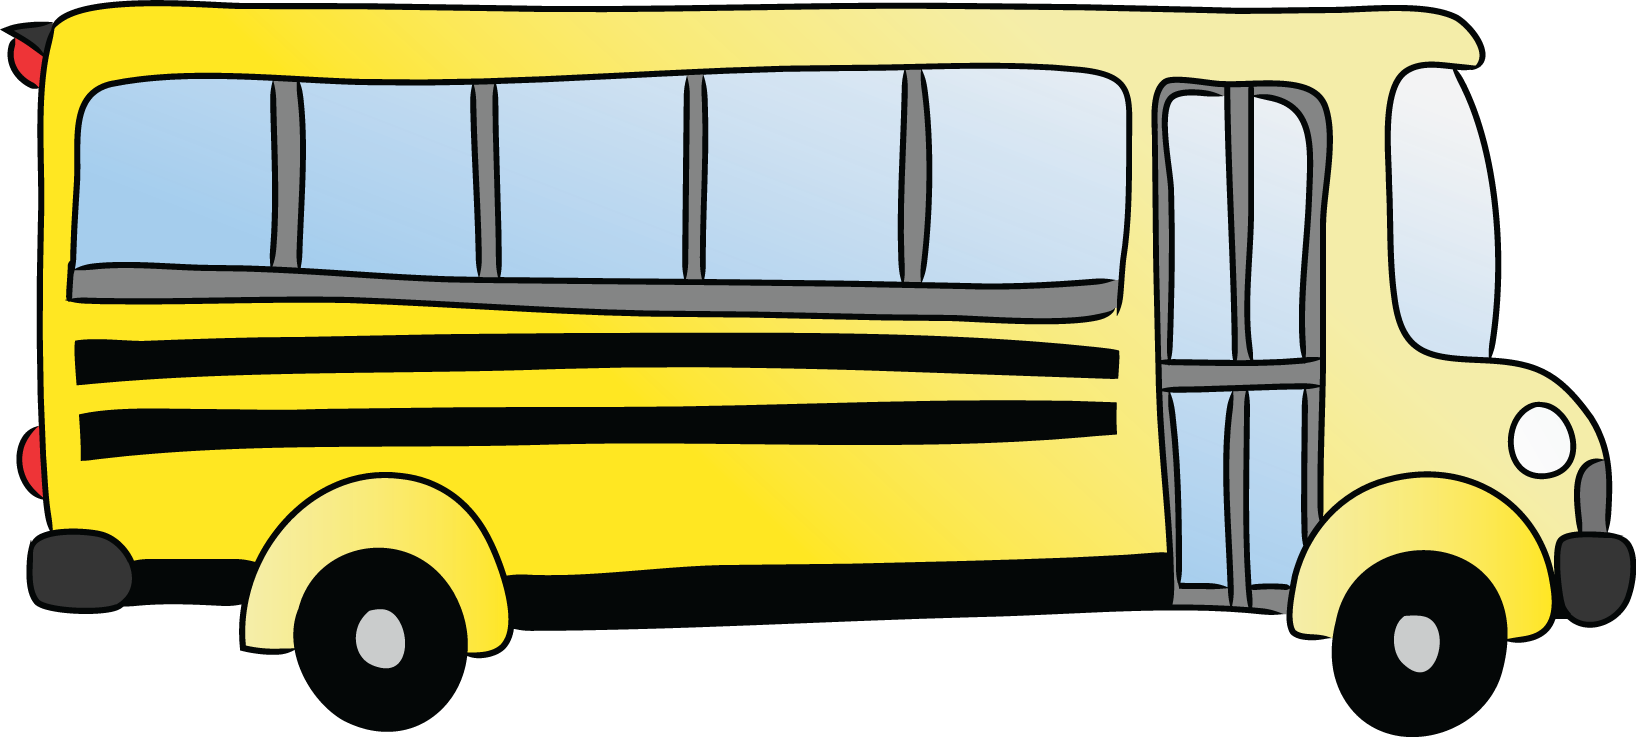 What goes into a sandwhich bus clipart image library library Free Picture Of A School Bus, Download Free Clip Art, Free ... image library library